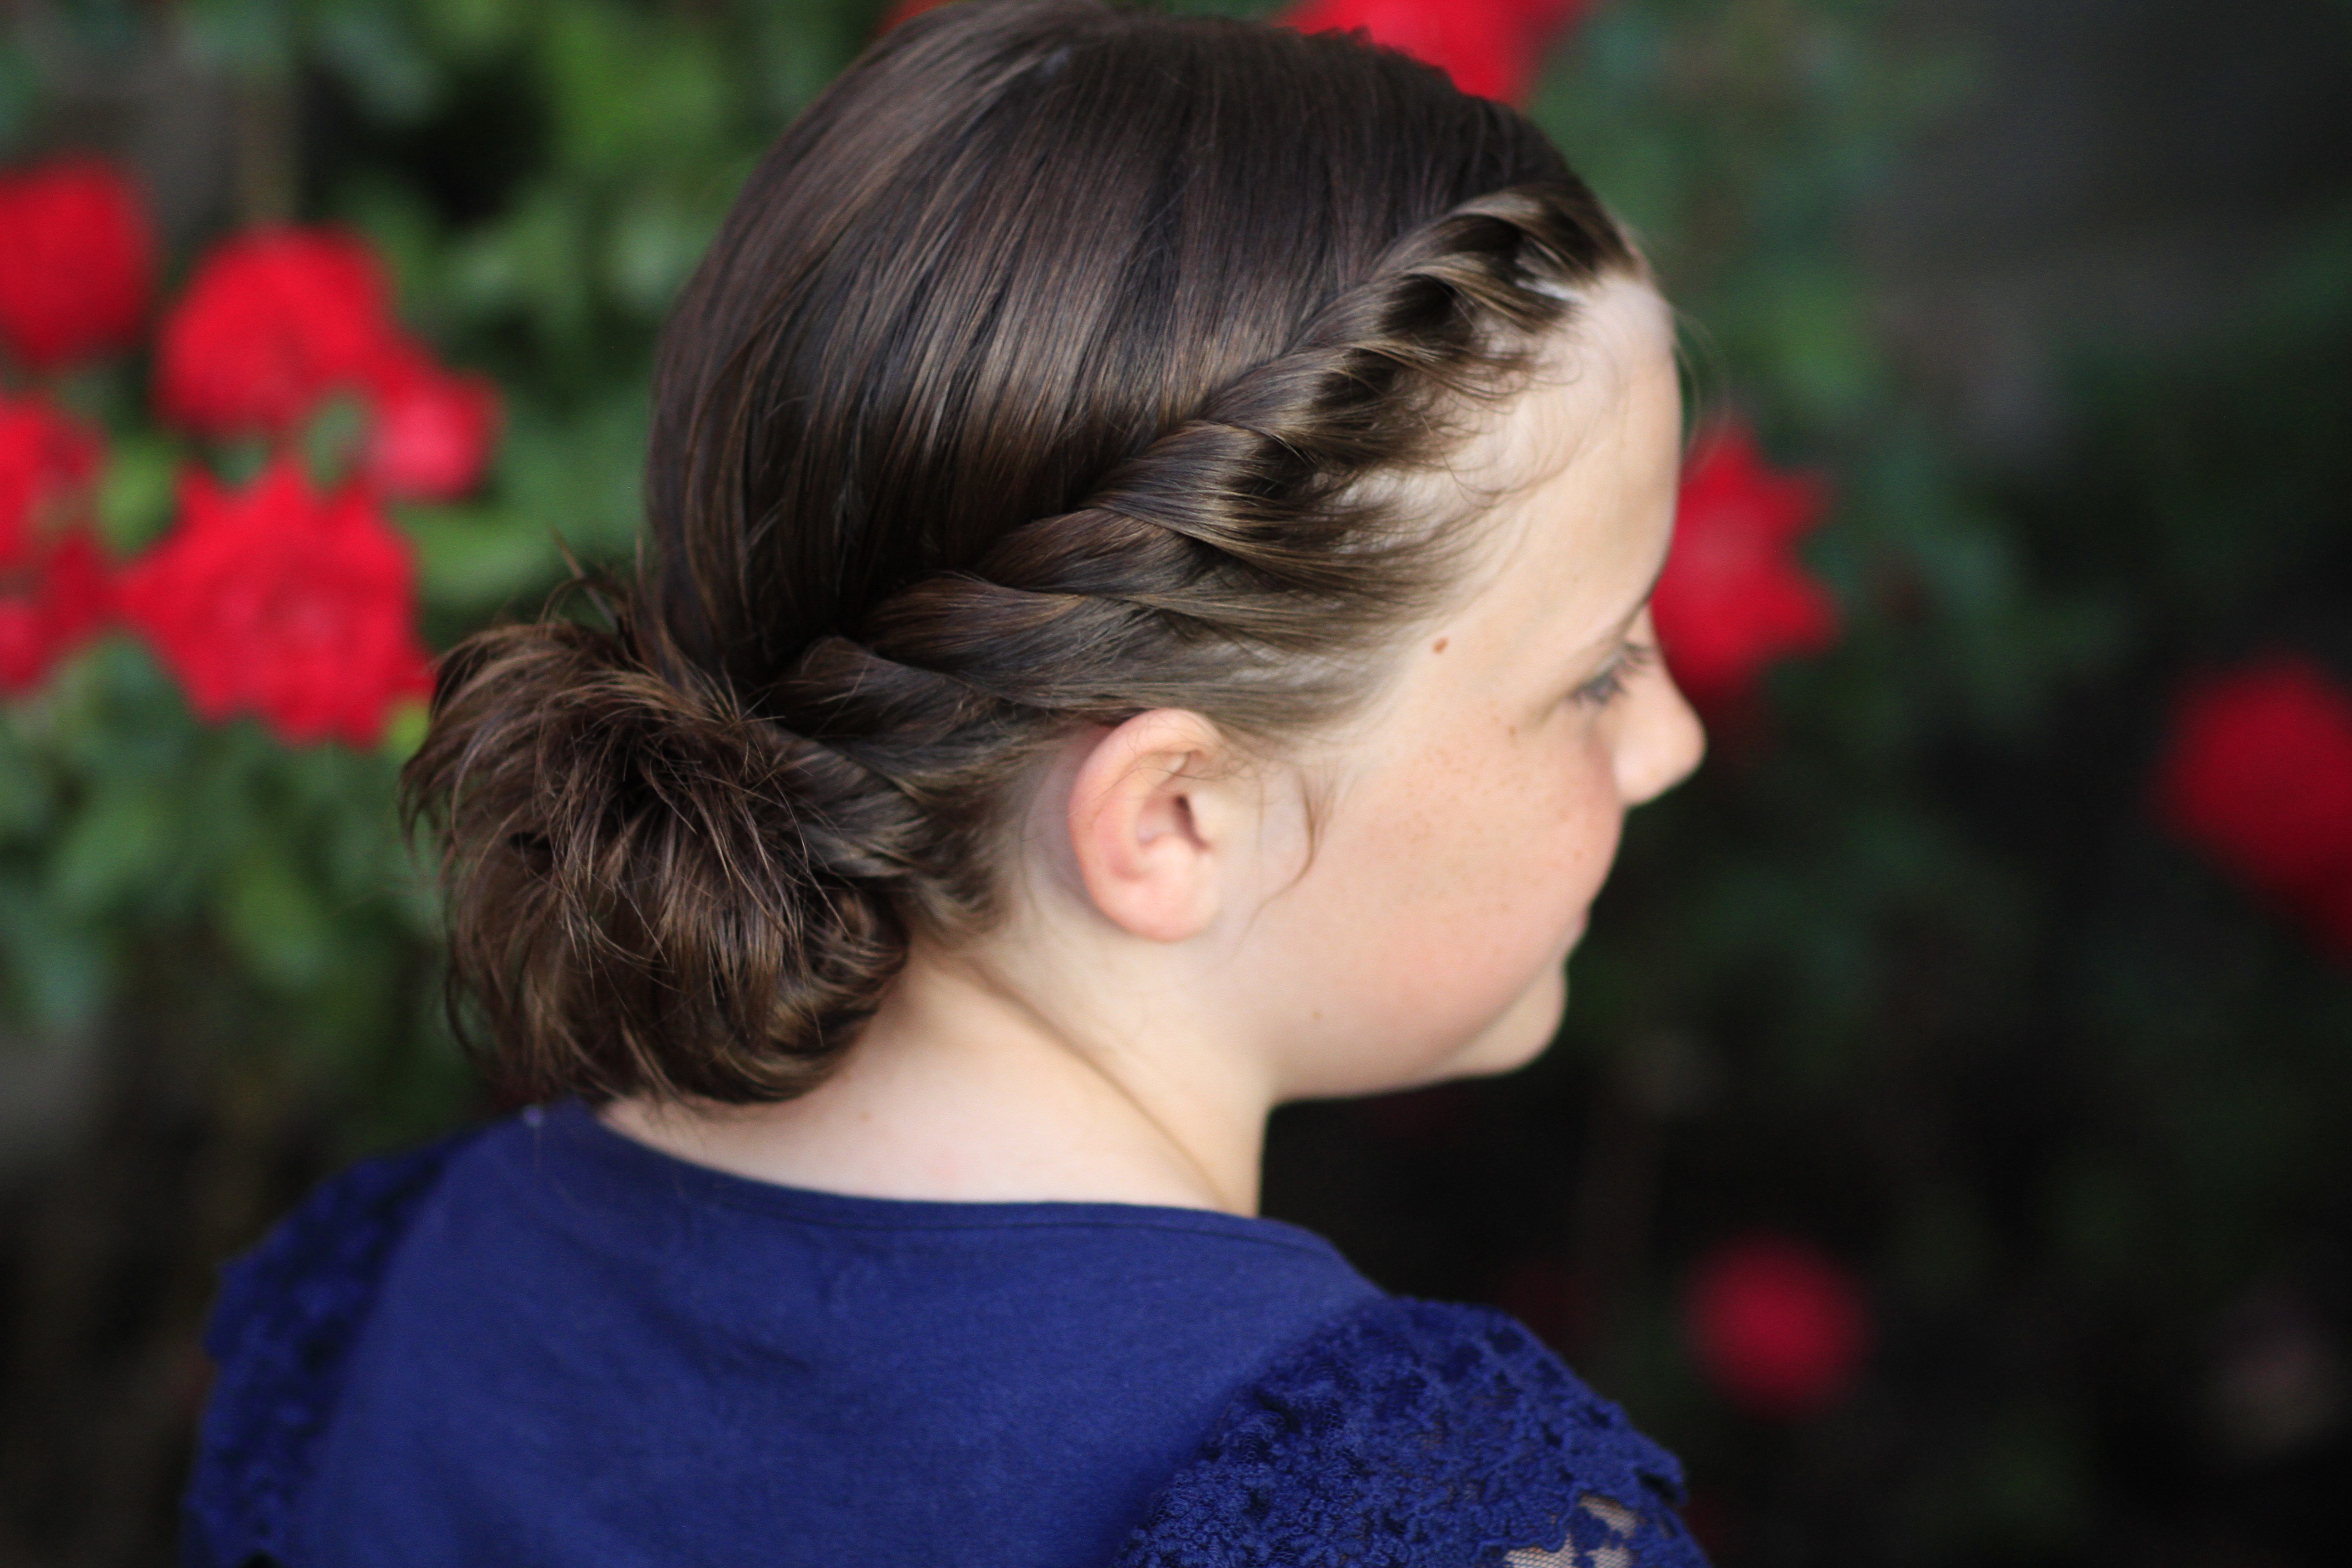 The Best Hairstyle Video Twistbacks Into Side Ponytail Cute Girls Hairstyles Pictures